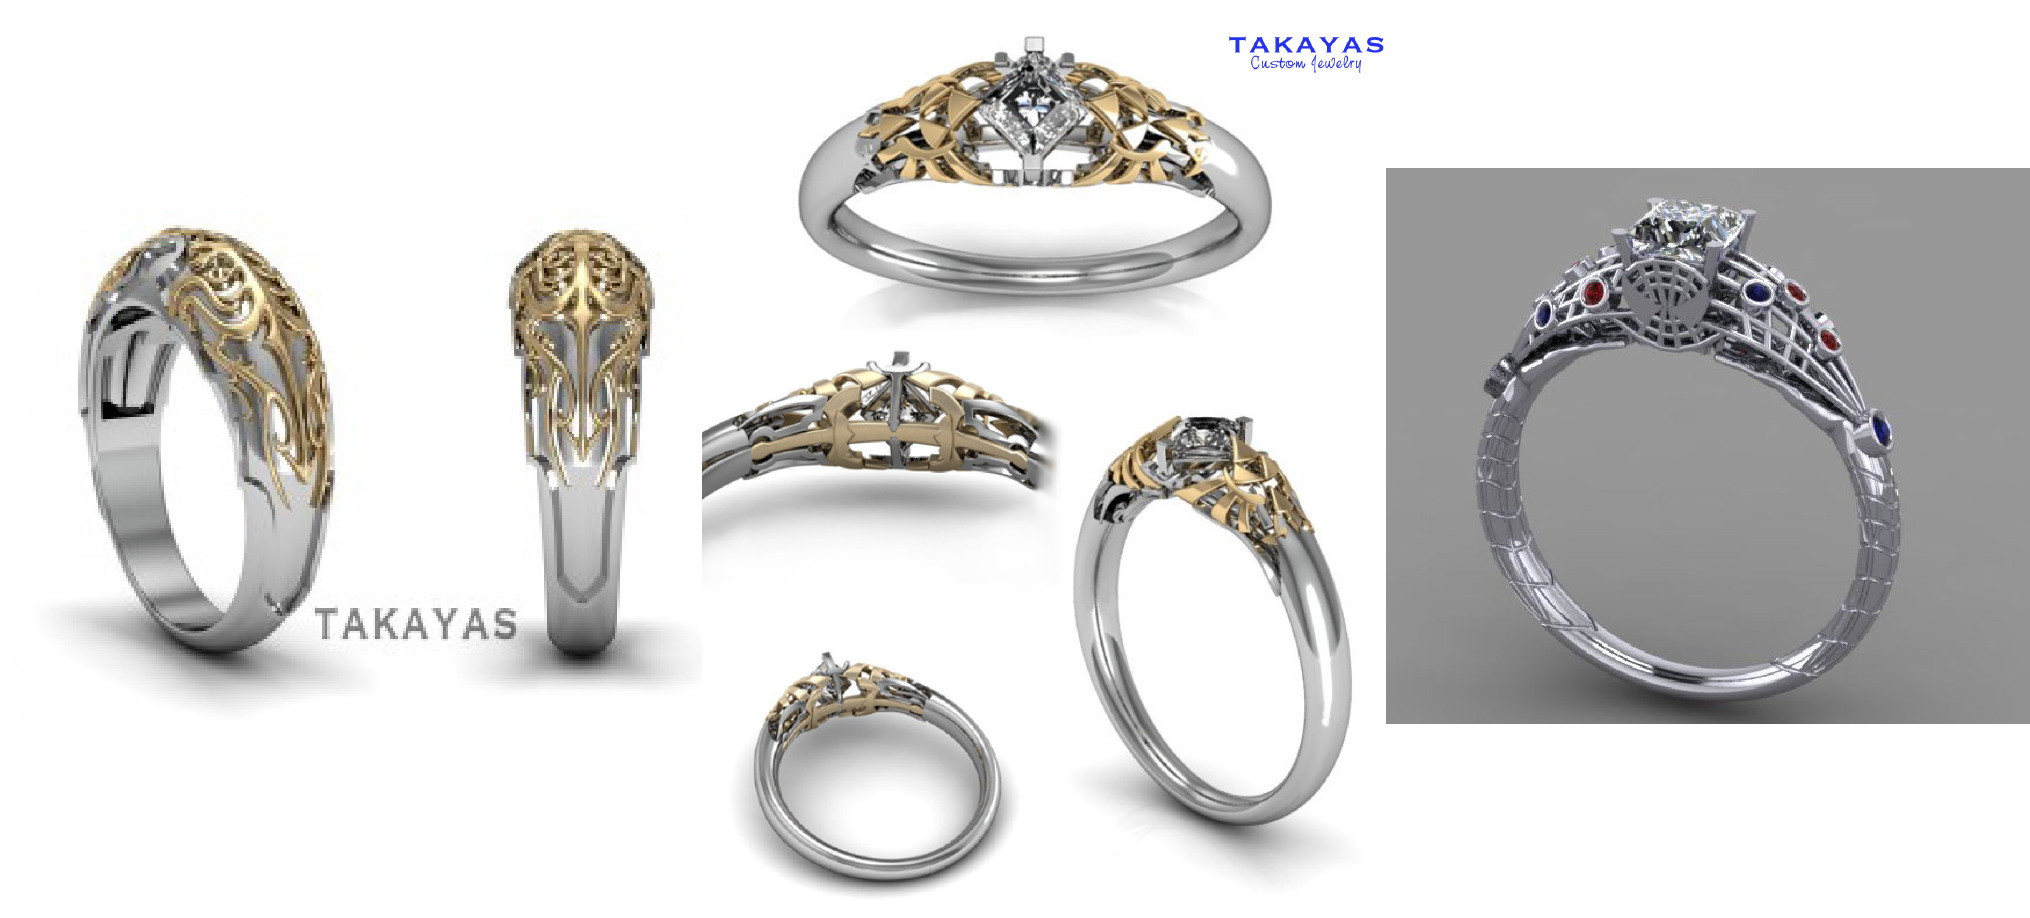 triforce parsec jewelry is geeky making true come geek dr who rings takayas custom and dreams wedding